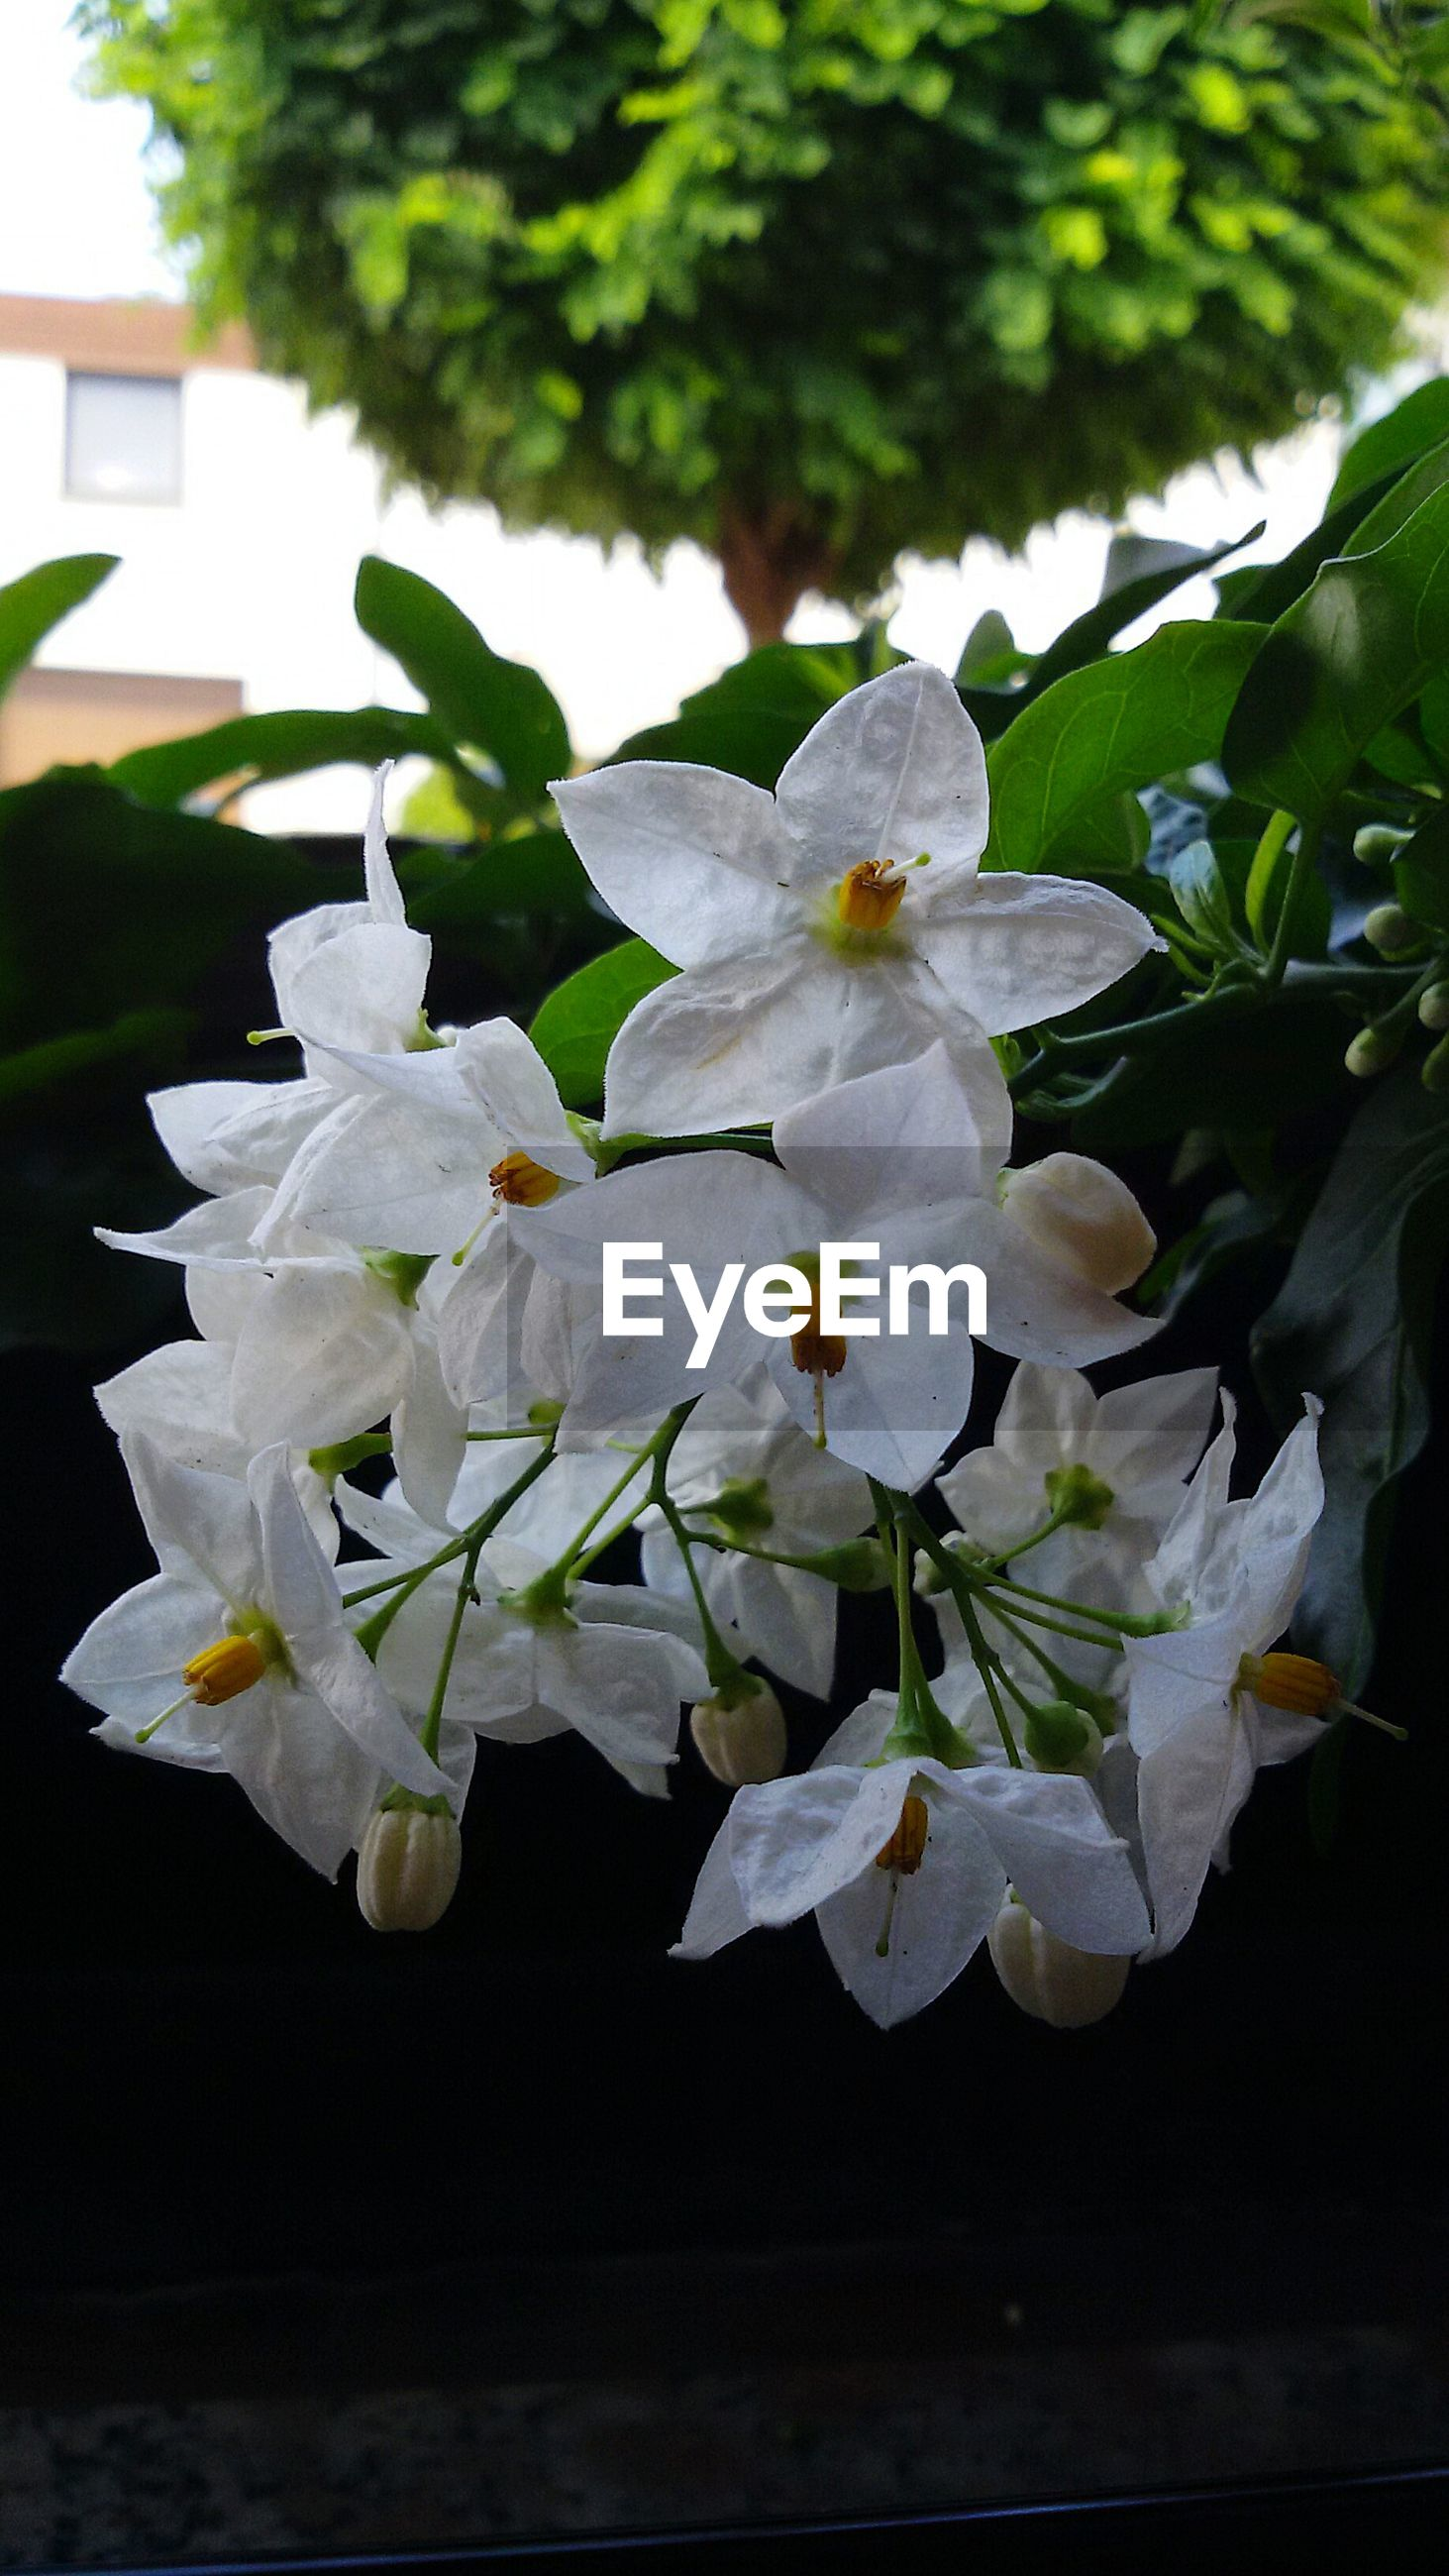 flower, freshness, white color, petal, fragility, growth, leaf, flower head, beauty in nature, close-up, plant, nature, blooming, focus on foreground, in bloom, blossom, white, botany, no people, indoors